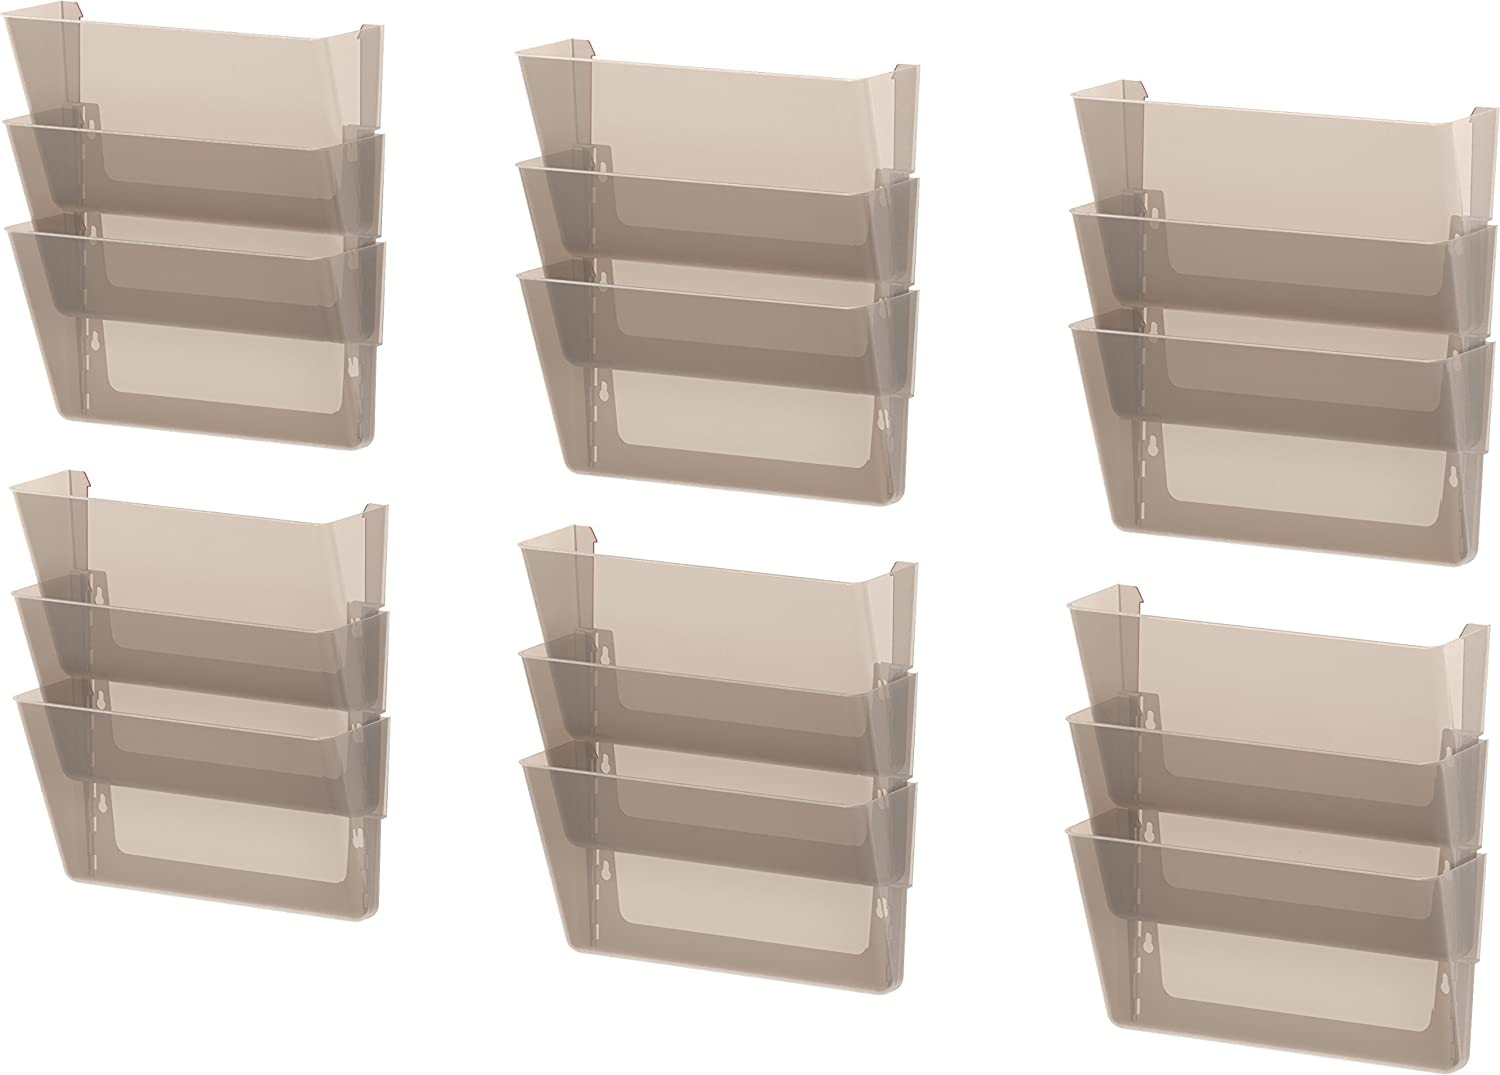 Storex Unbreakable Wall File, 16 x 4 x 7 Inches, Legal, Smoke, Case of 6 (70324U06C) Storex Industries Corp.